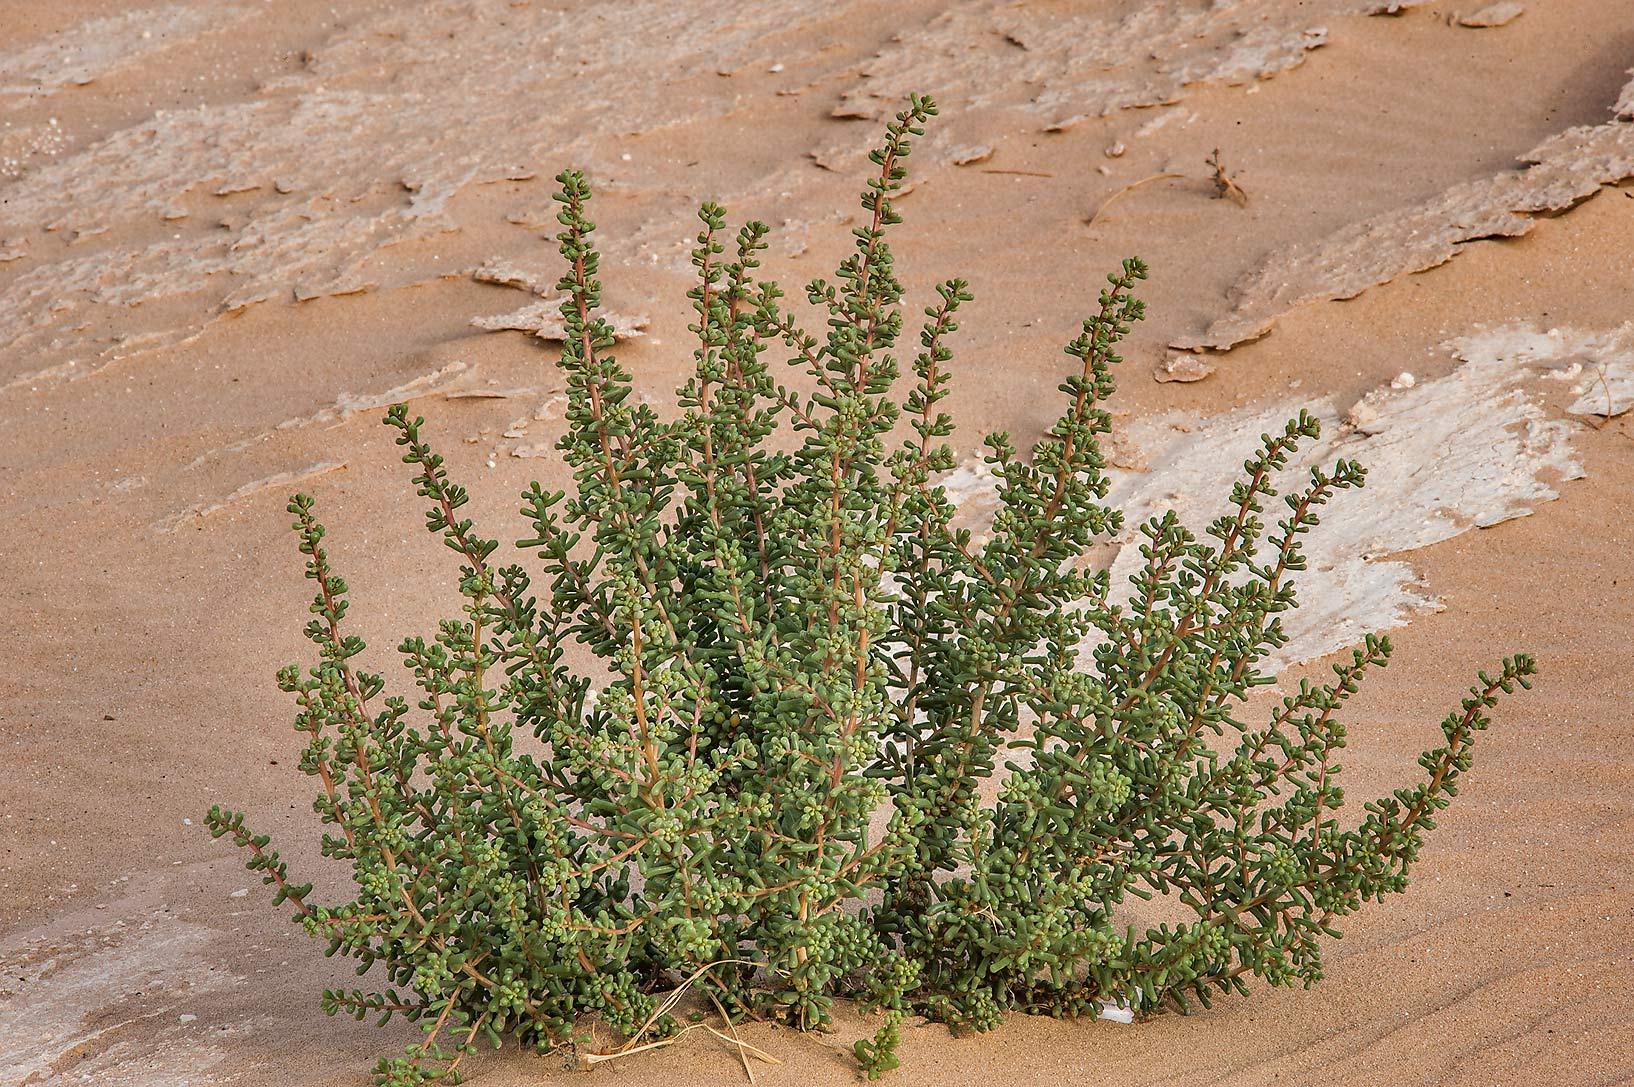 Bush of Salsola drummondii with club-shaped...area of Rawdat Ekdaim. Southern Qatar